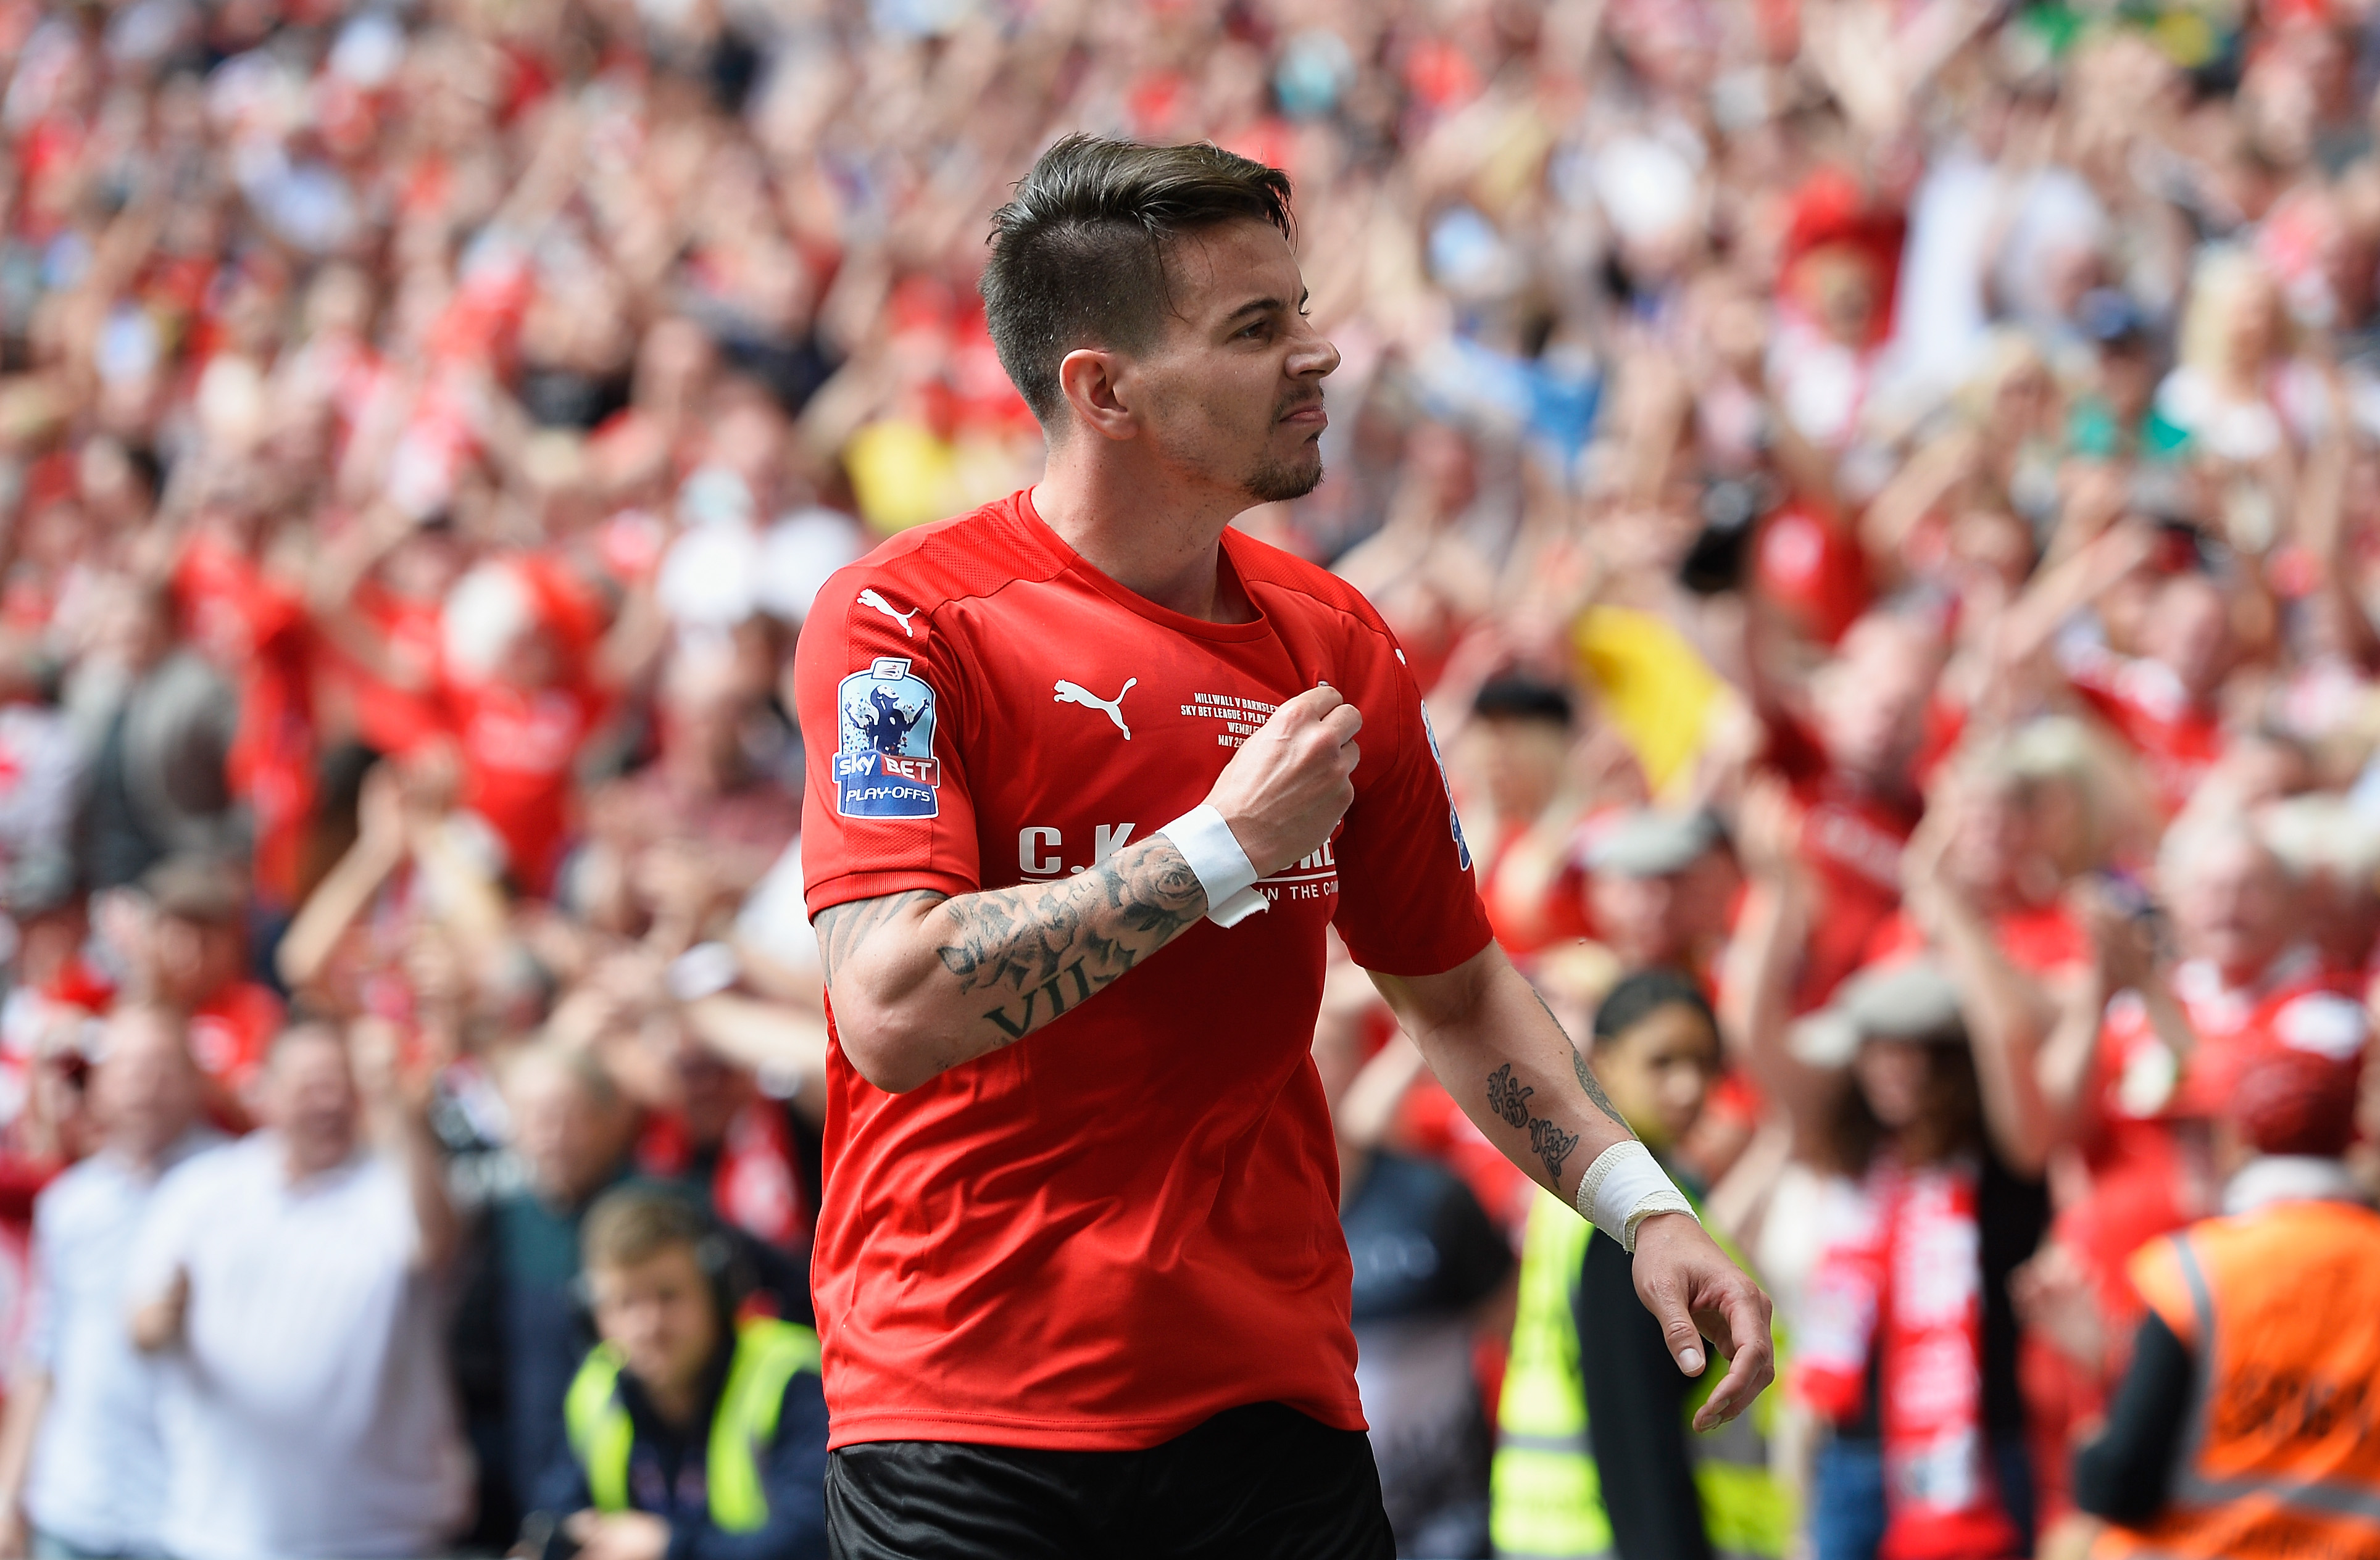 Adam Hammill scores stunning solo goal as Barnsley beat Millwall in the League One play-off final